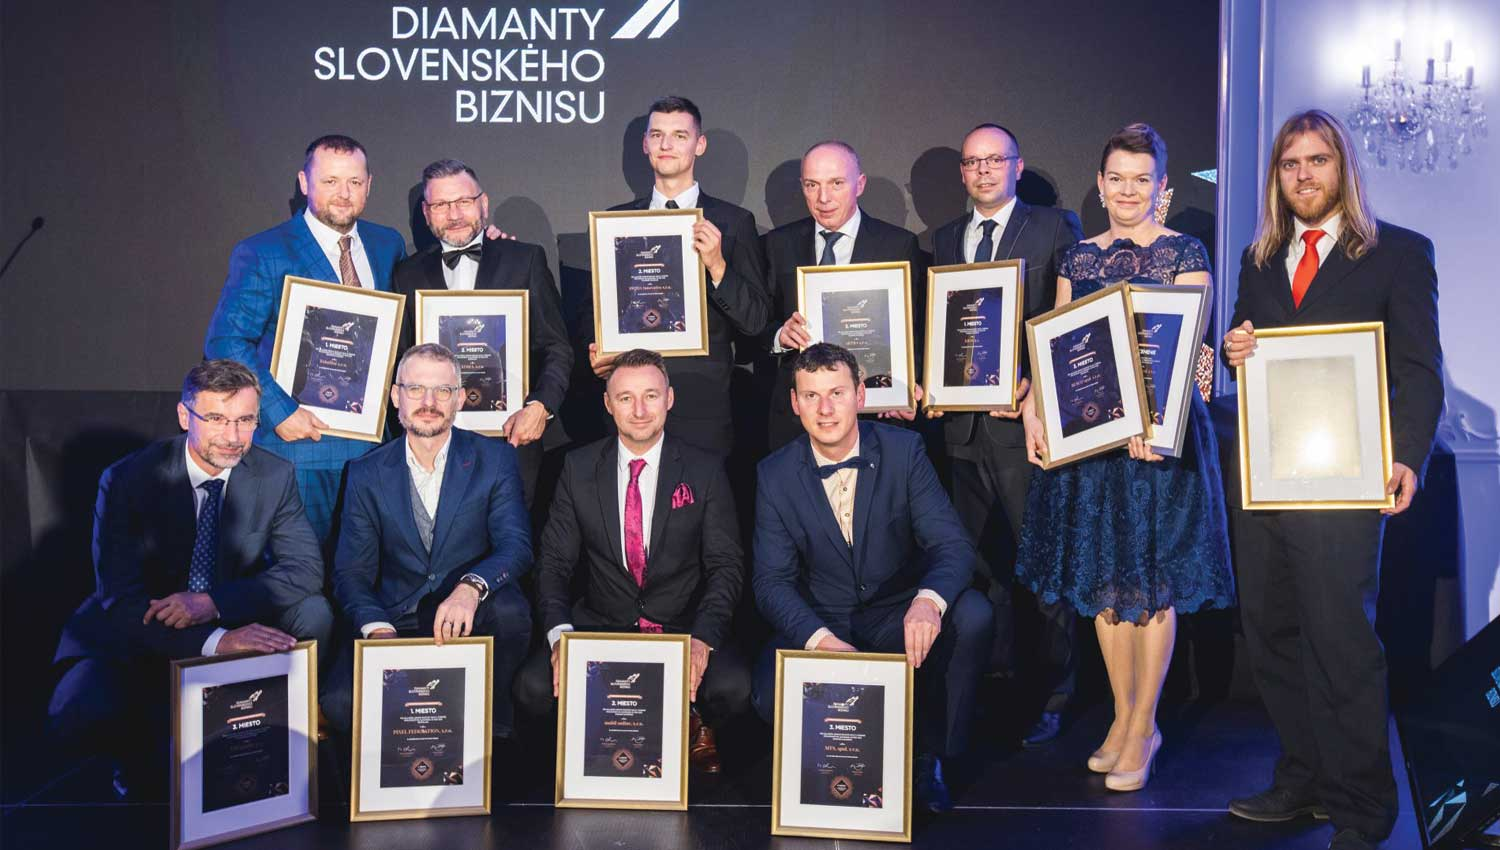 Telegrafia: Diamond of the Slovak Business 2019